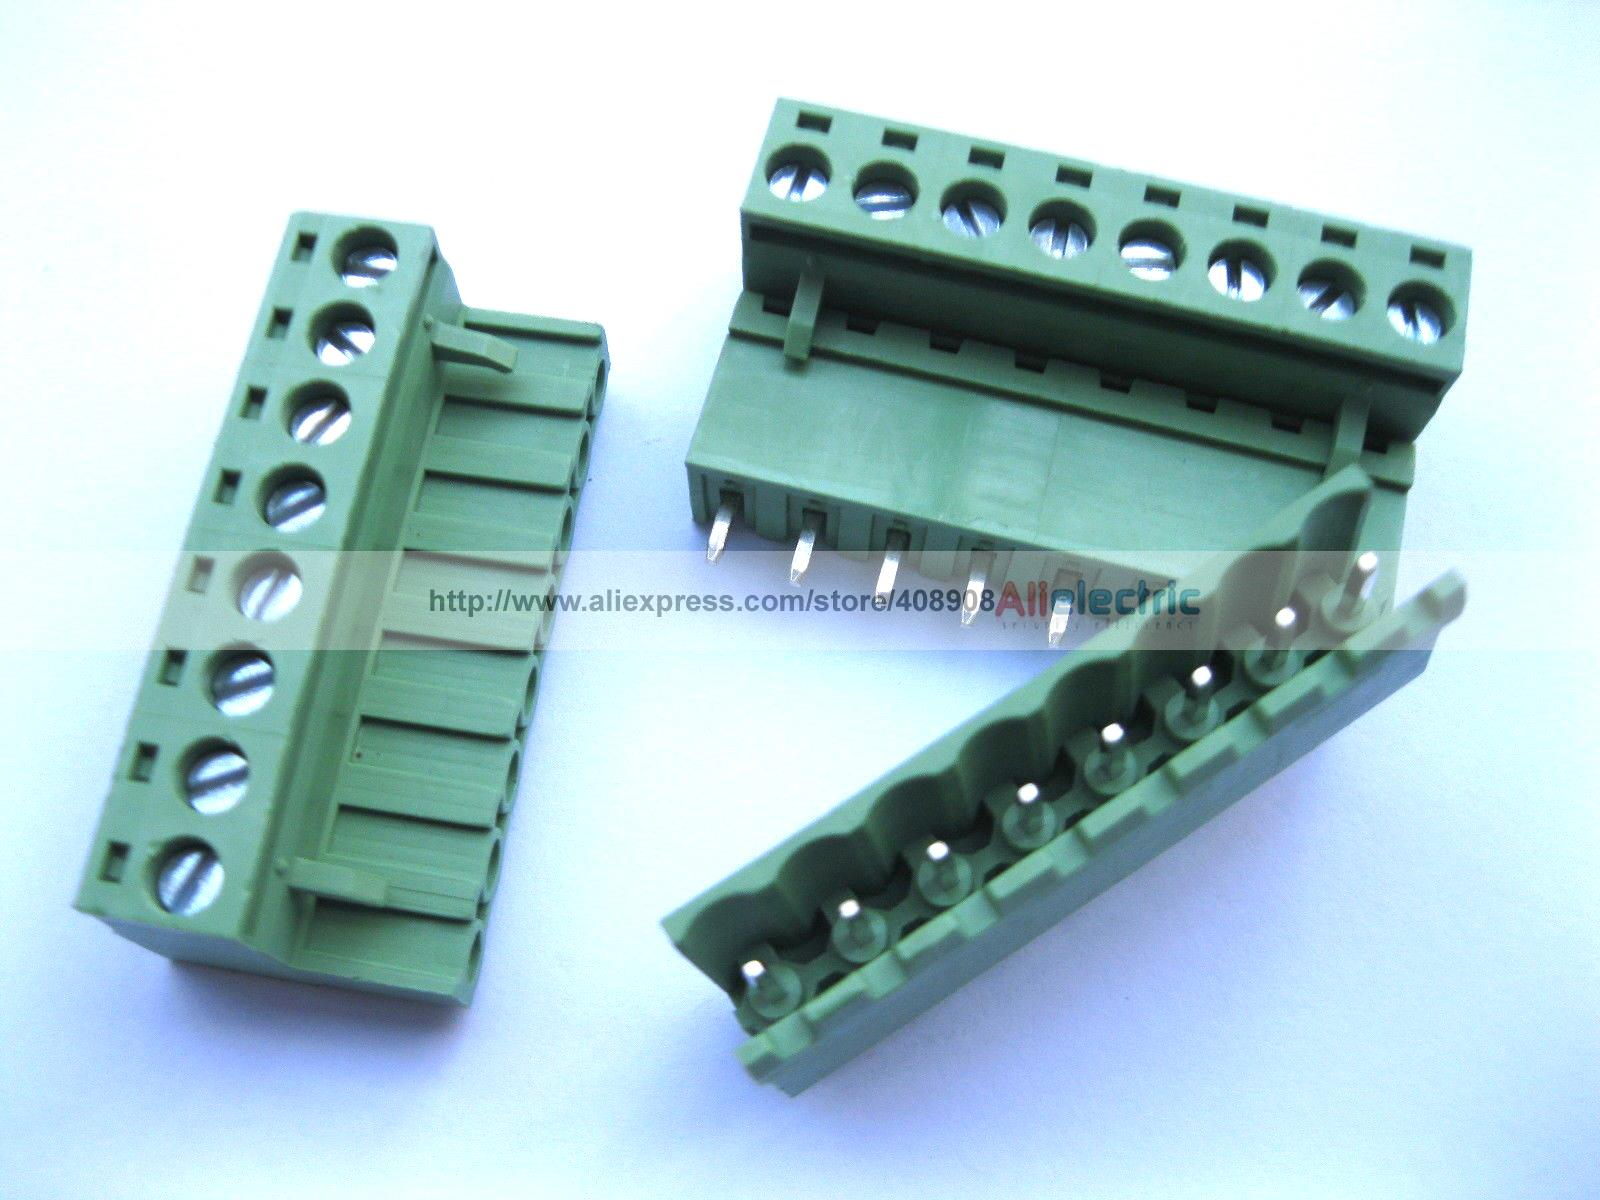 10 Pcs 5.08mm Straight 8 Pin Screw Terminal Block Connector Pluggable Type Green 100 pcs 5 08a 5 08mm straight 2 pin screw terminal block connector pluggable type